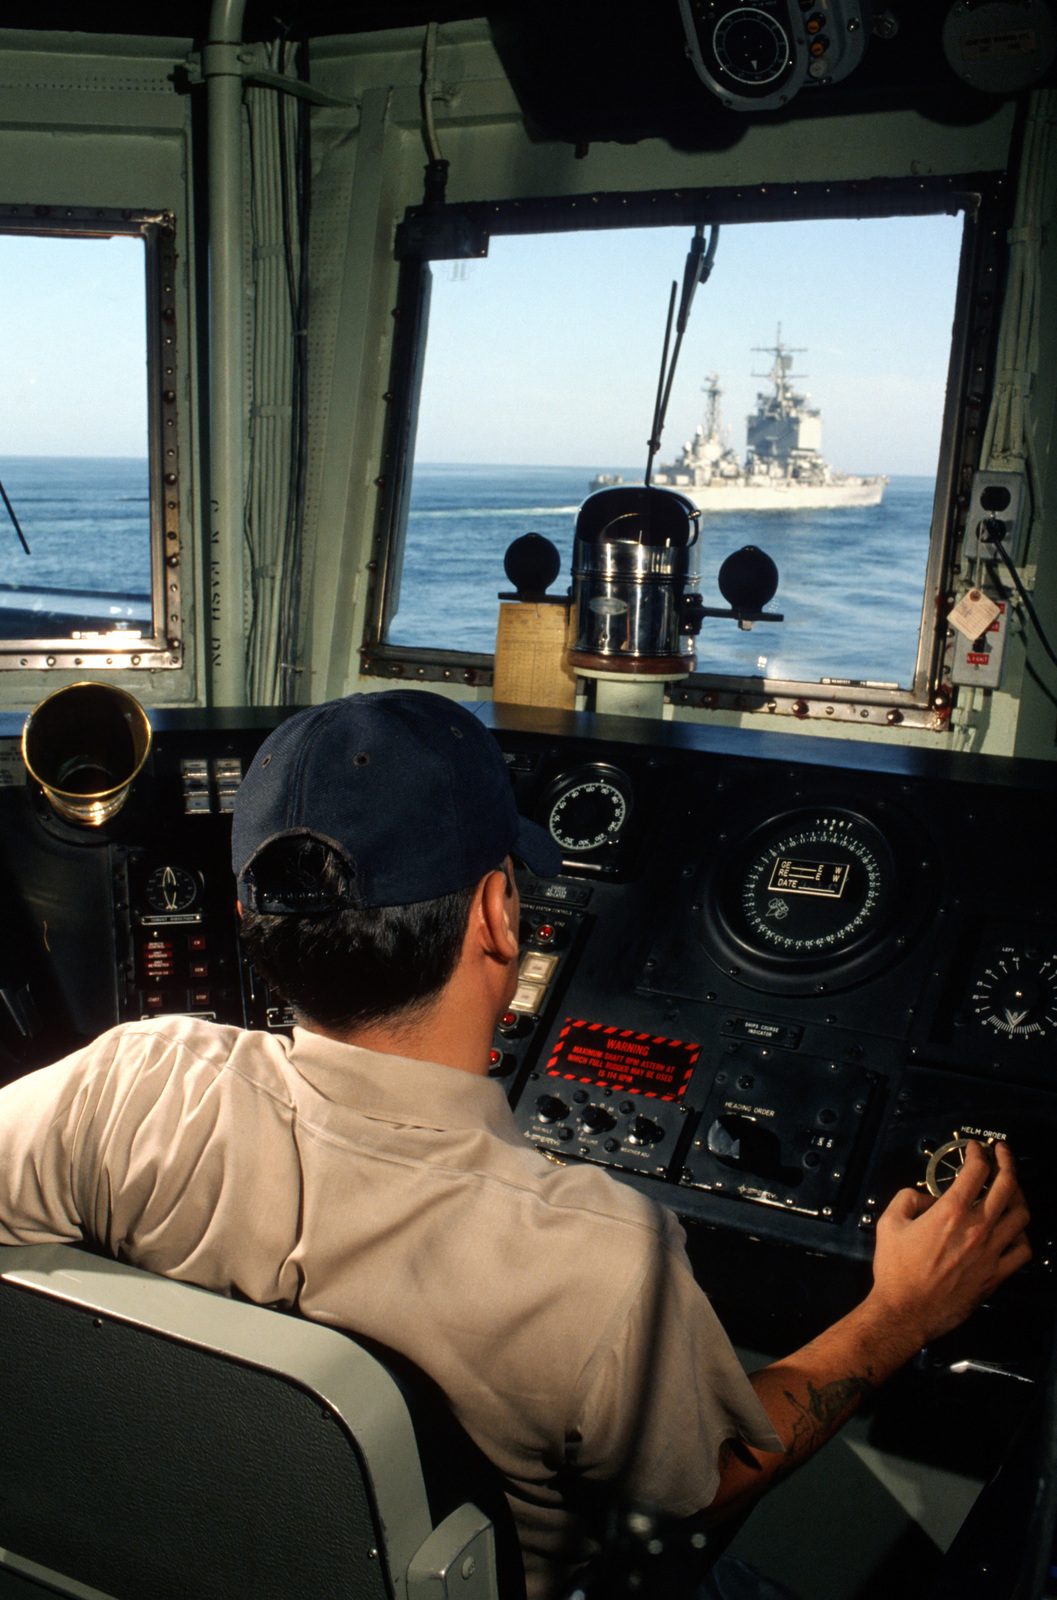 Persian Gulf. A chief quartermaster mans the helm of the guided missile frigate USS FORD (FFG 54) as the ship approaches the nuclear-powered guided missile cruiser USS LONG BEACH (CGN 9). The FORD is escorting reflagged tankers through the Gulf